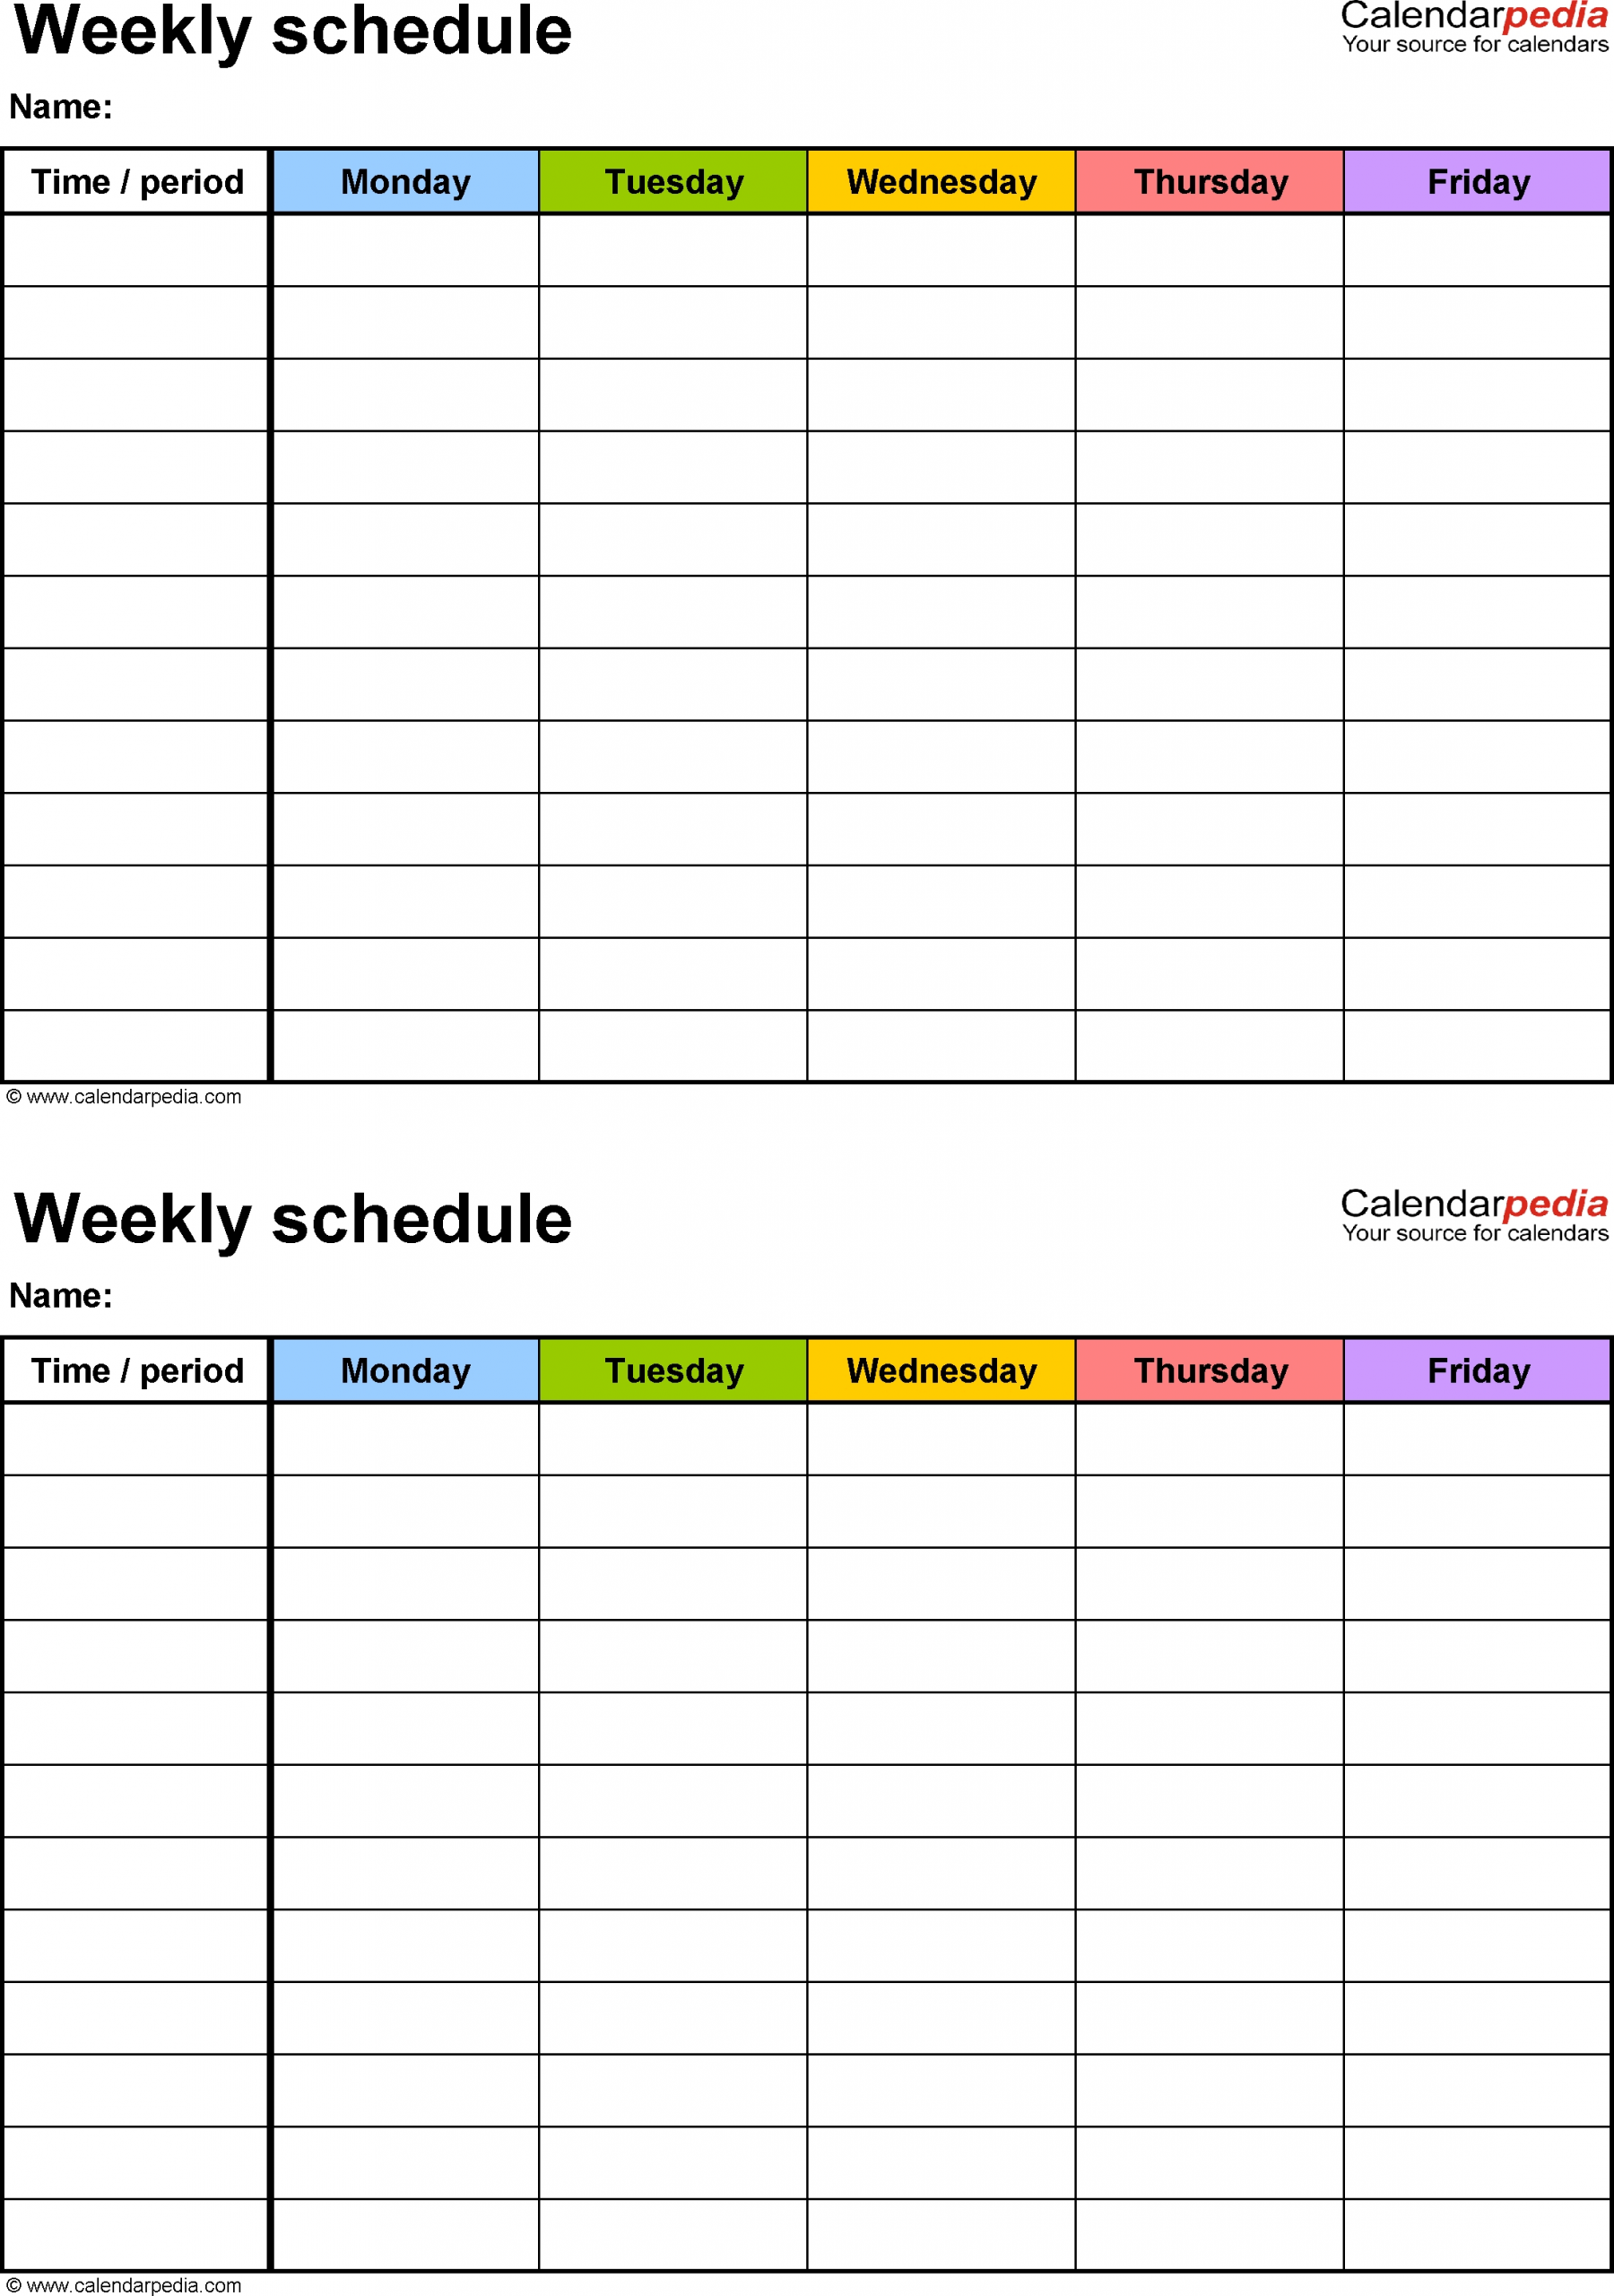 Printable Weekly Schedule Monday Thru Friday - Calendar Printable Template For A Schedule Monday To Friday